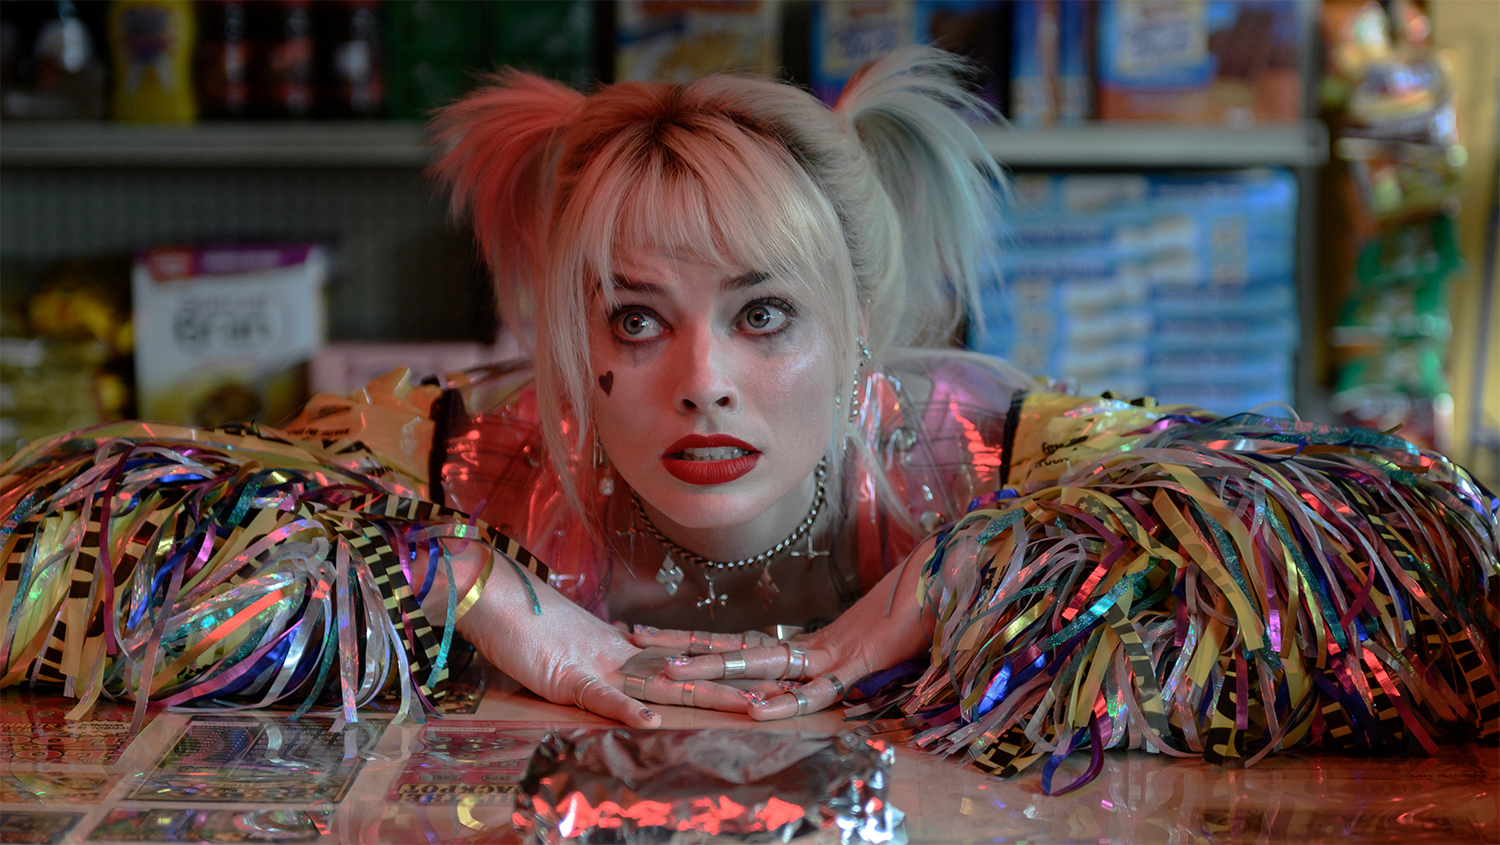 Birds of Prey Harley Quinn box office disappointing reasons why explanation